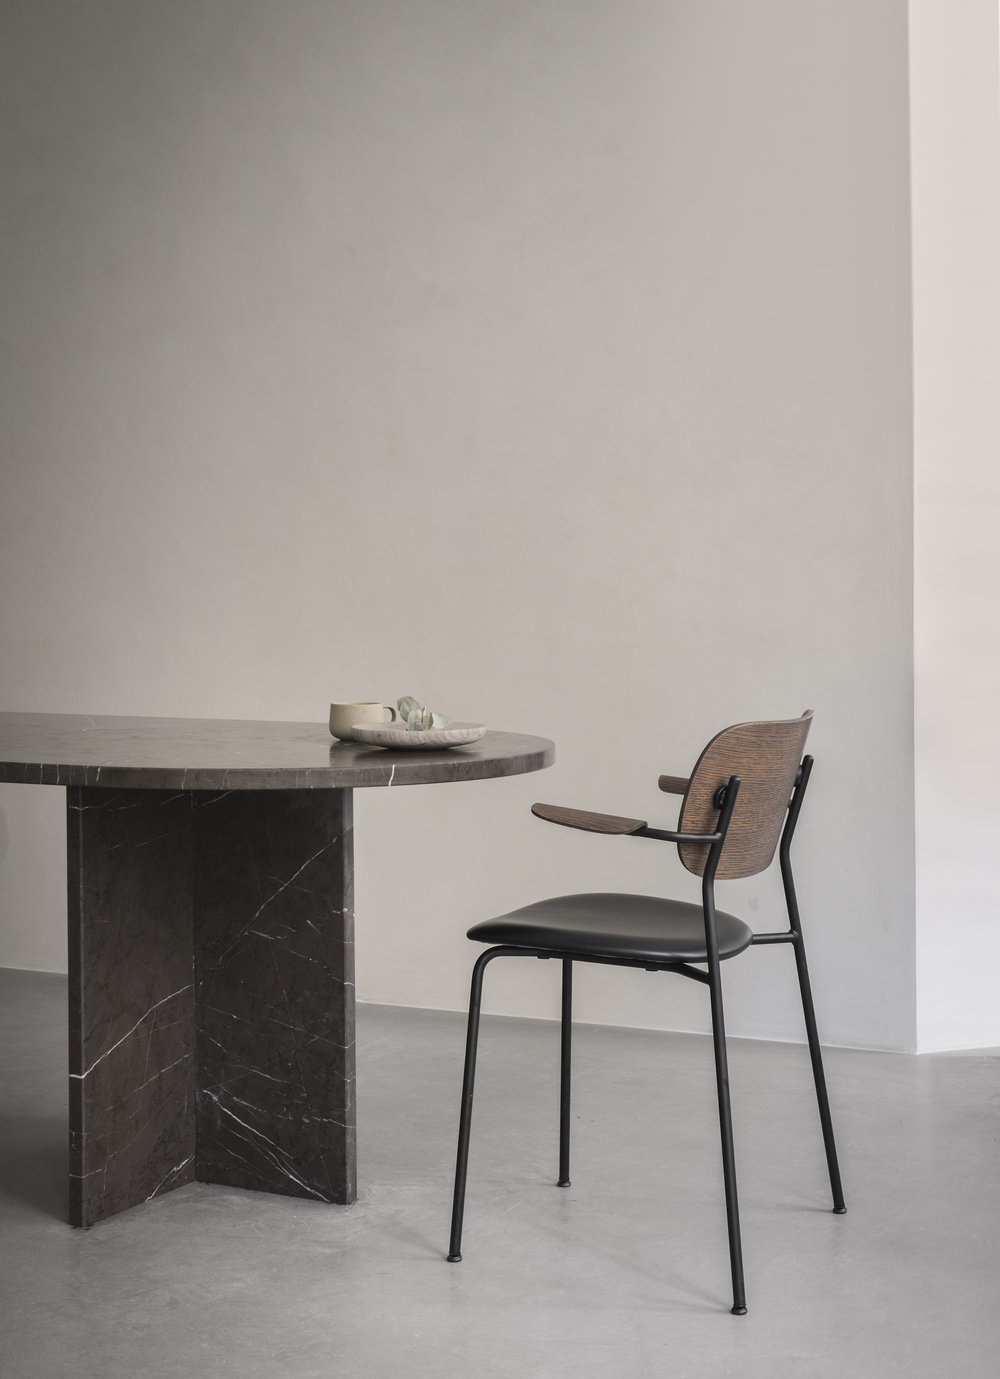 Snaregade table, Co Chair The Lab Menu, modern furniture, chair, scandinavian design, scandinavian home.jpg